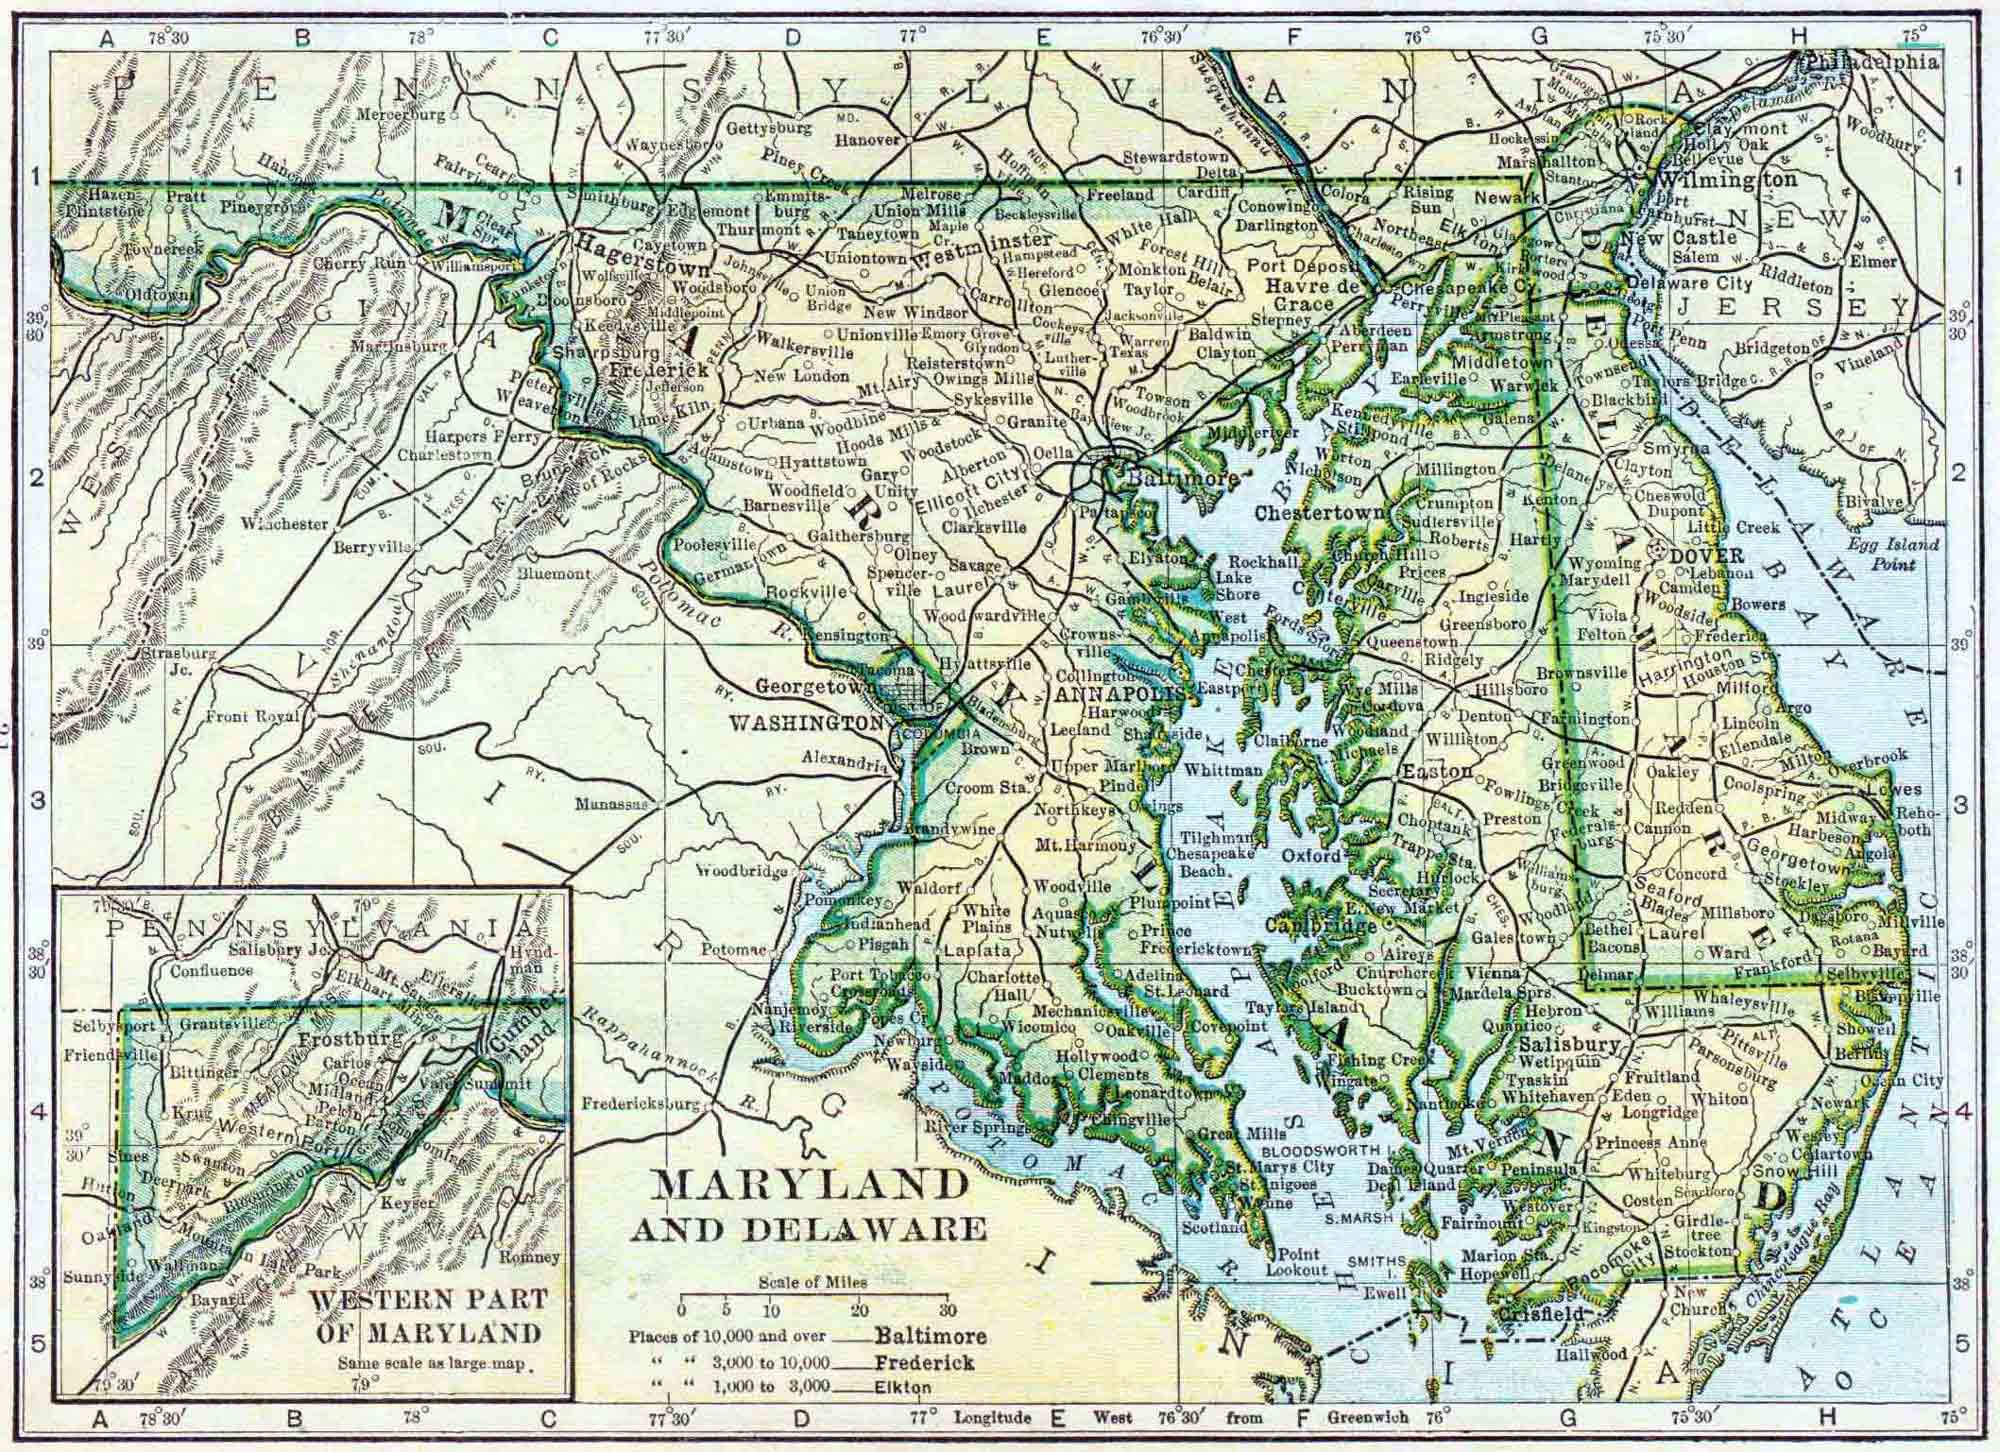 1910 Delaware and Maryland Census Map | Access Genealogy